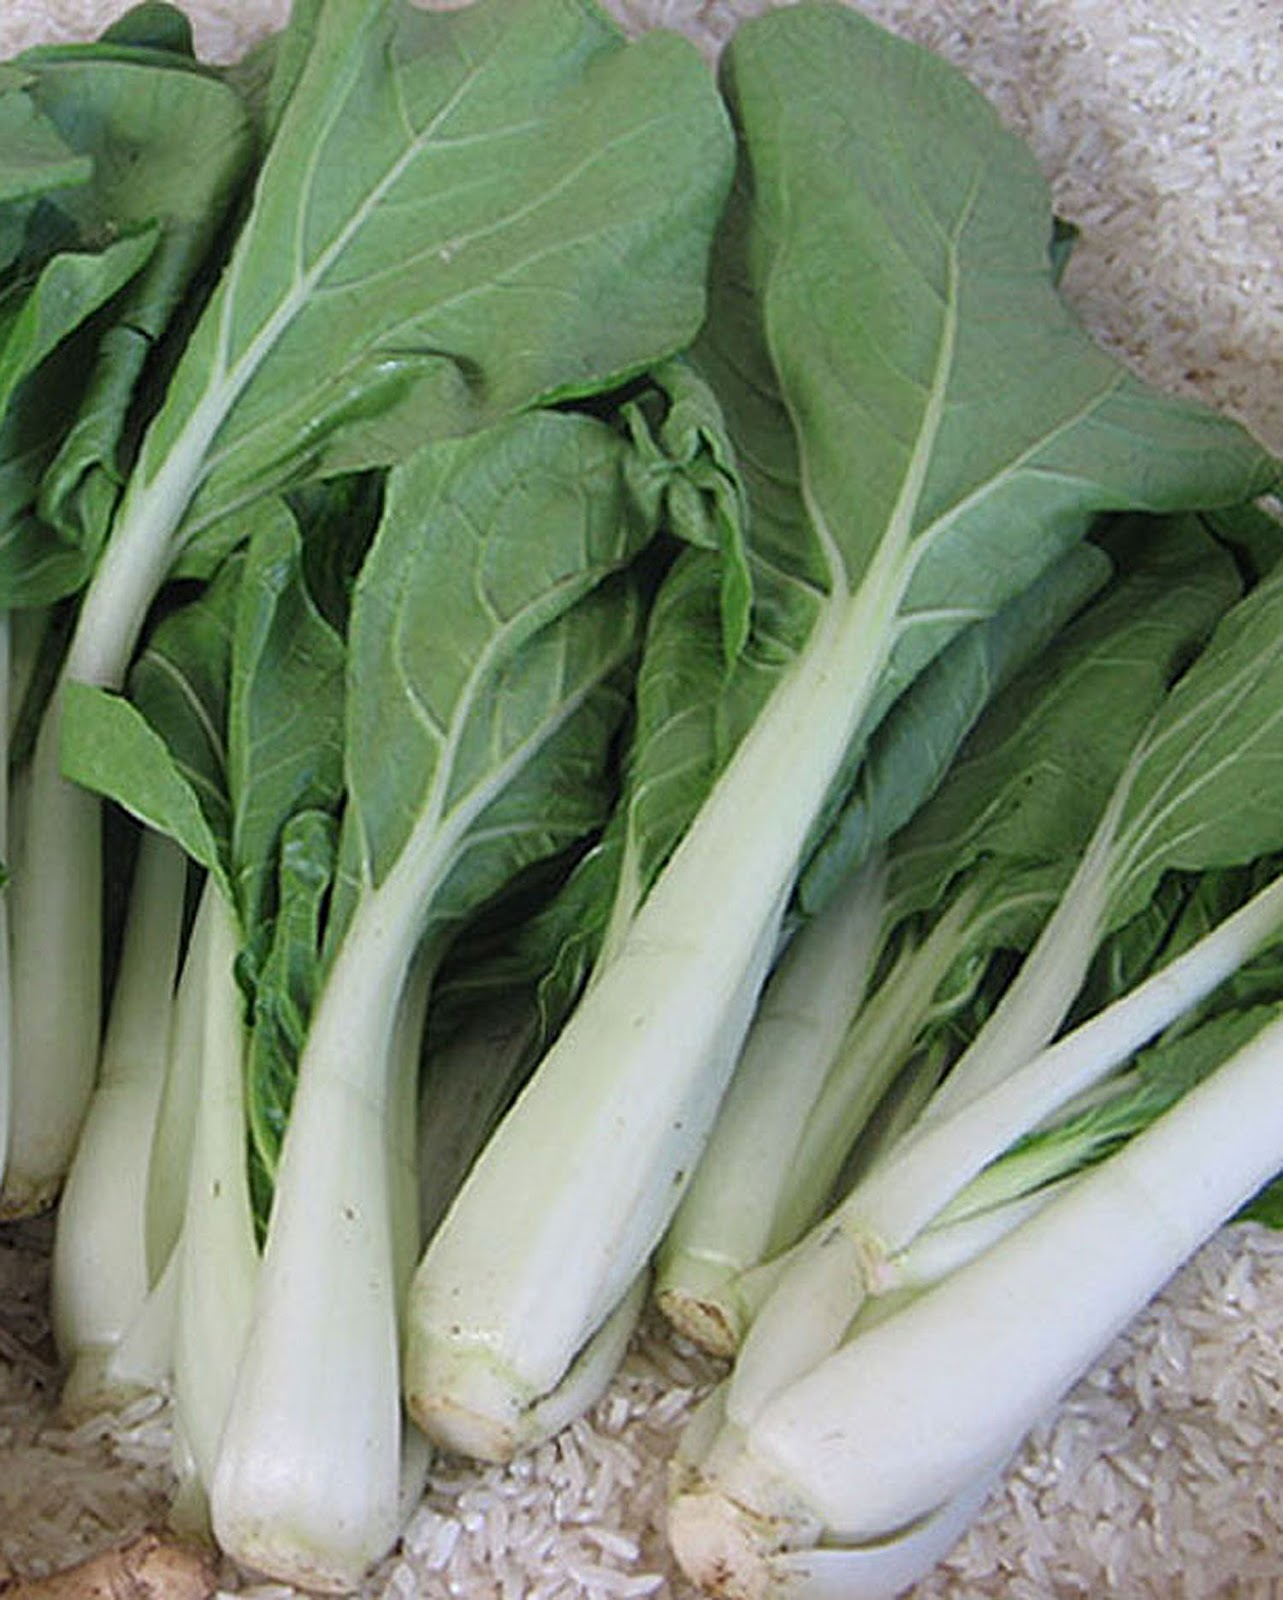 Chinese Green Vegetables with Stalks